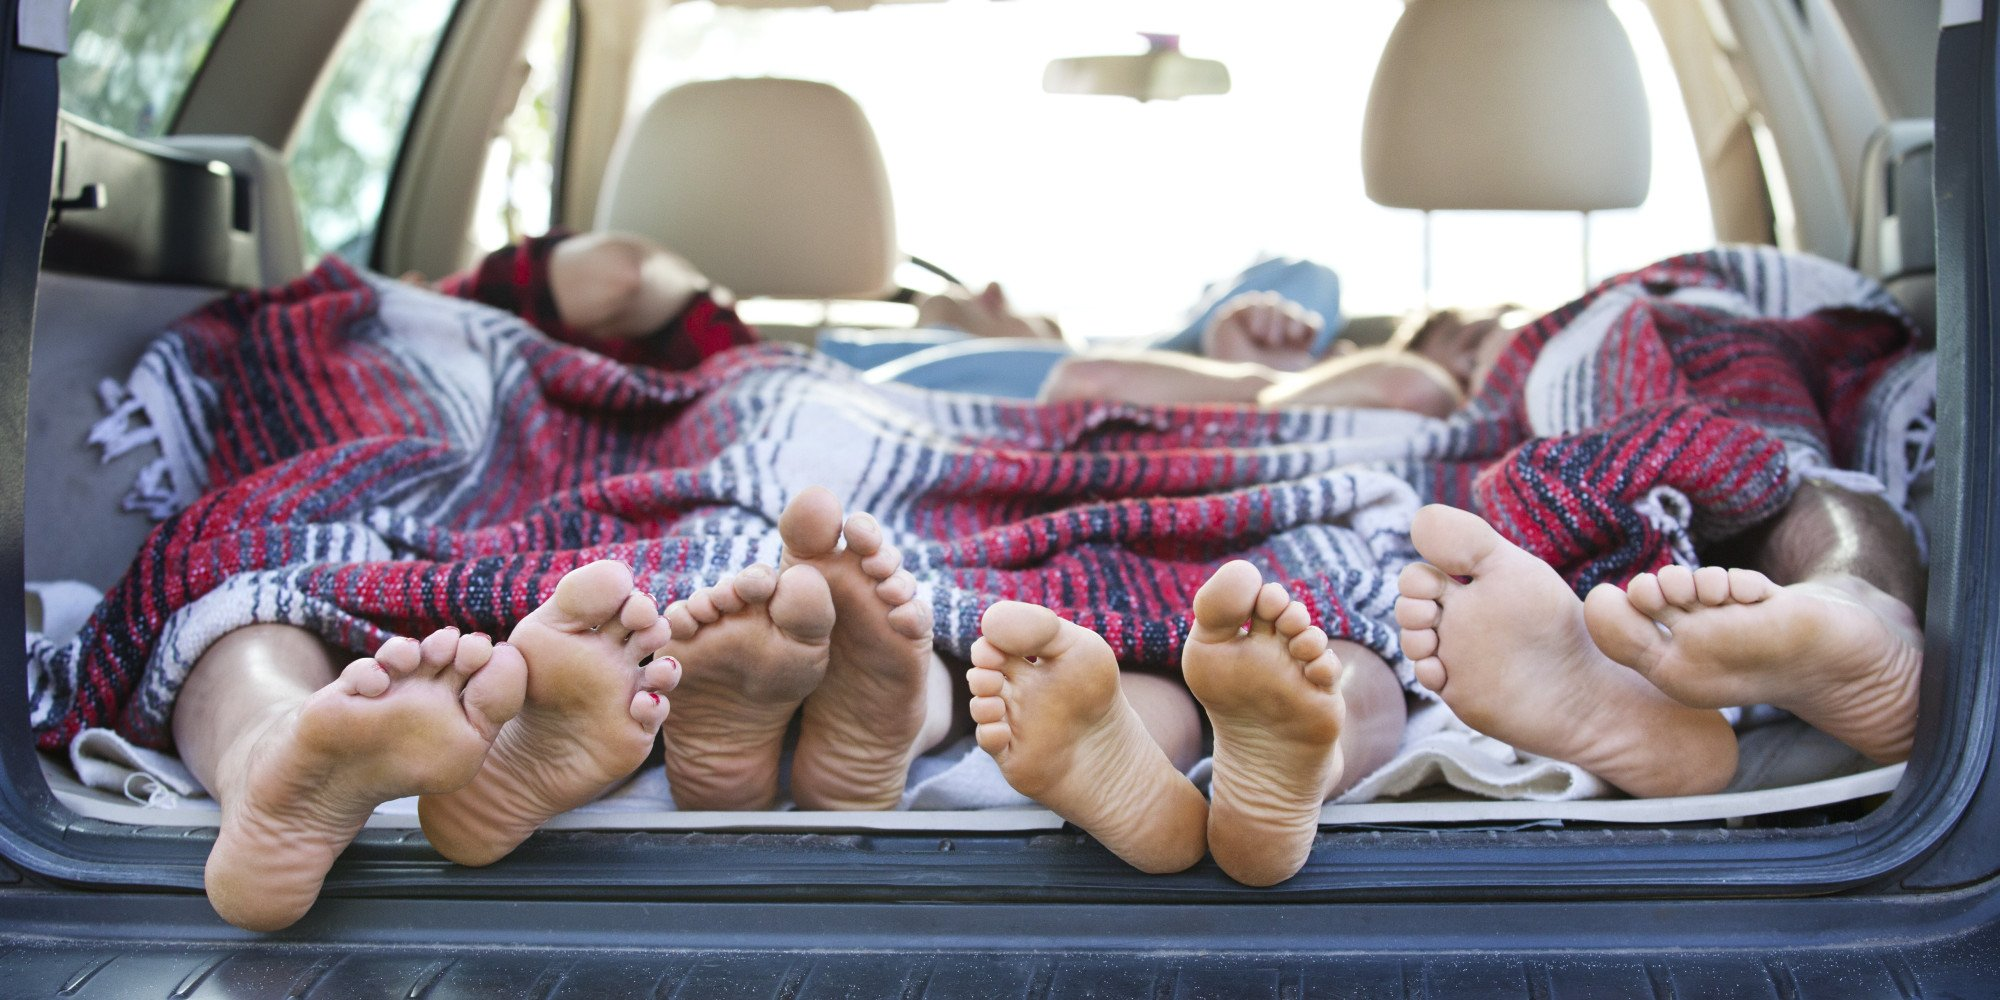 Campers' Feet Sticking Out of a Station Wagon